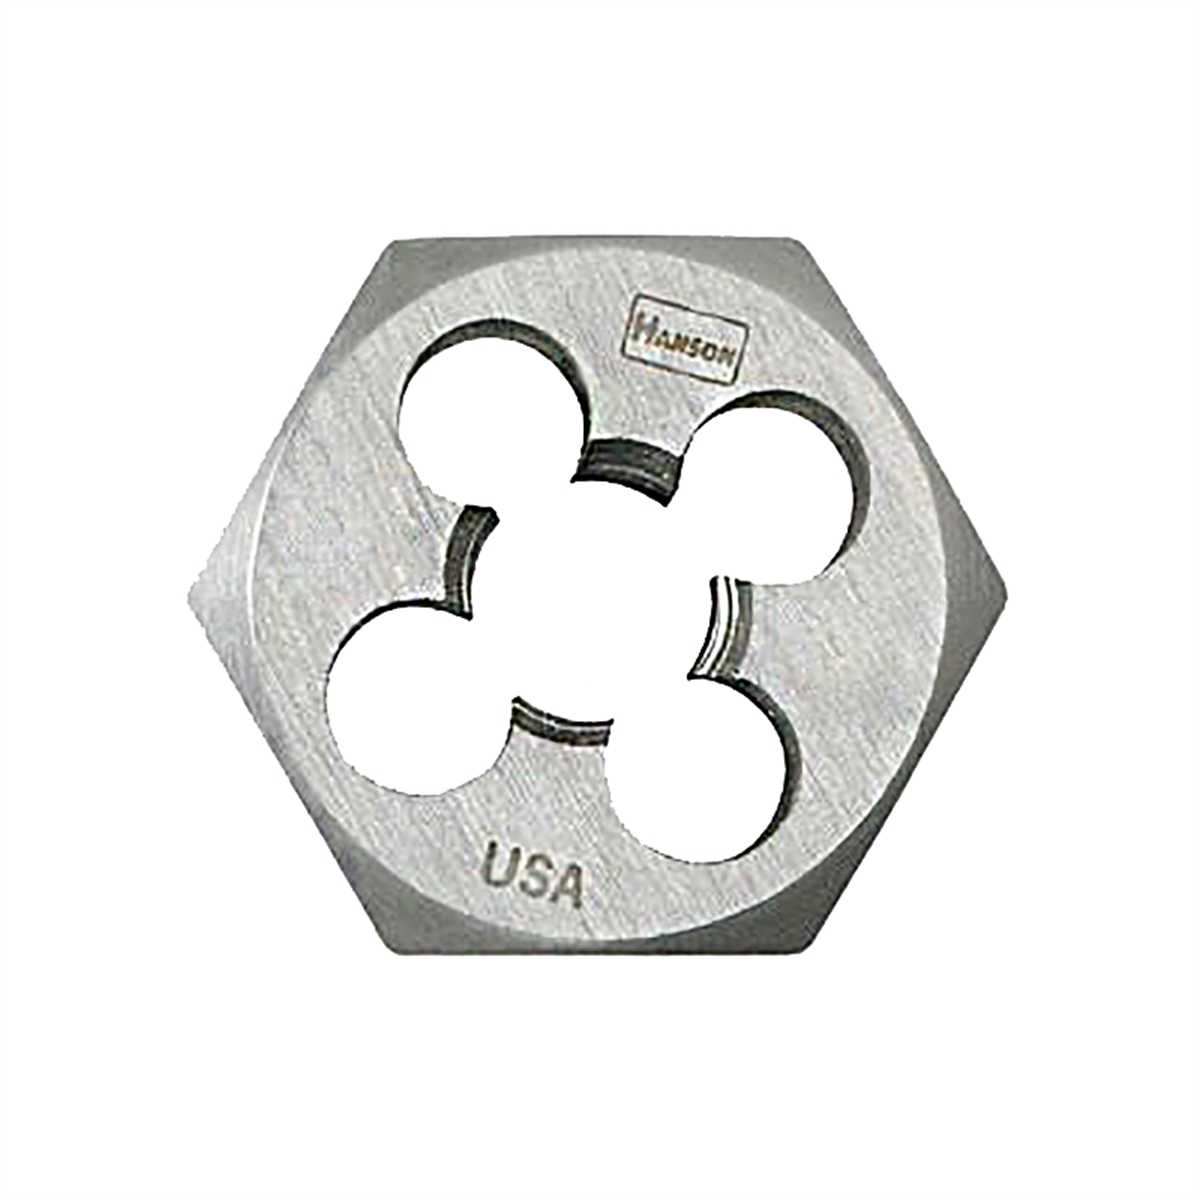 HCS Hex 1-7/16in. Across Flat Die 16MM-2.00